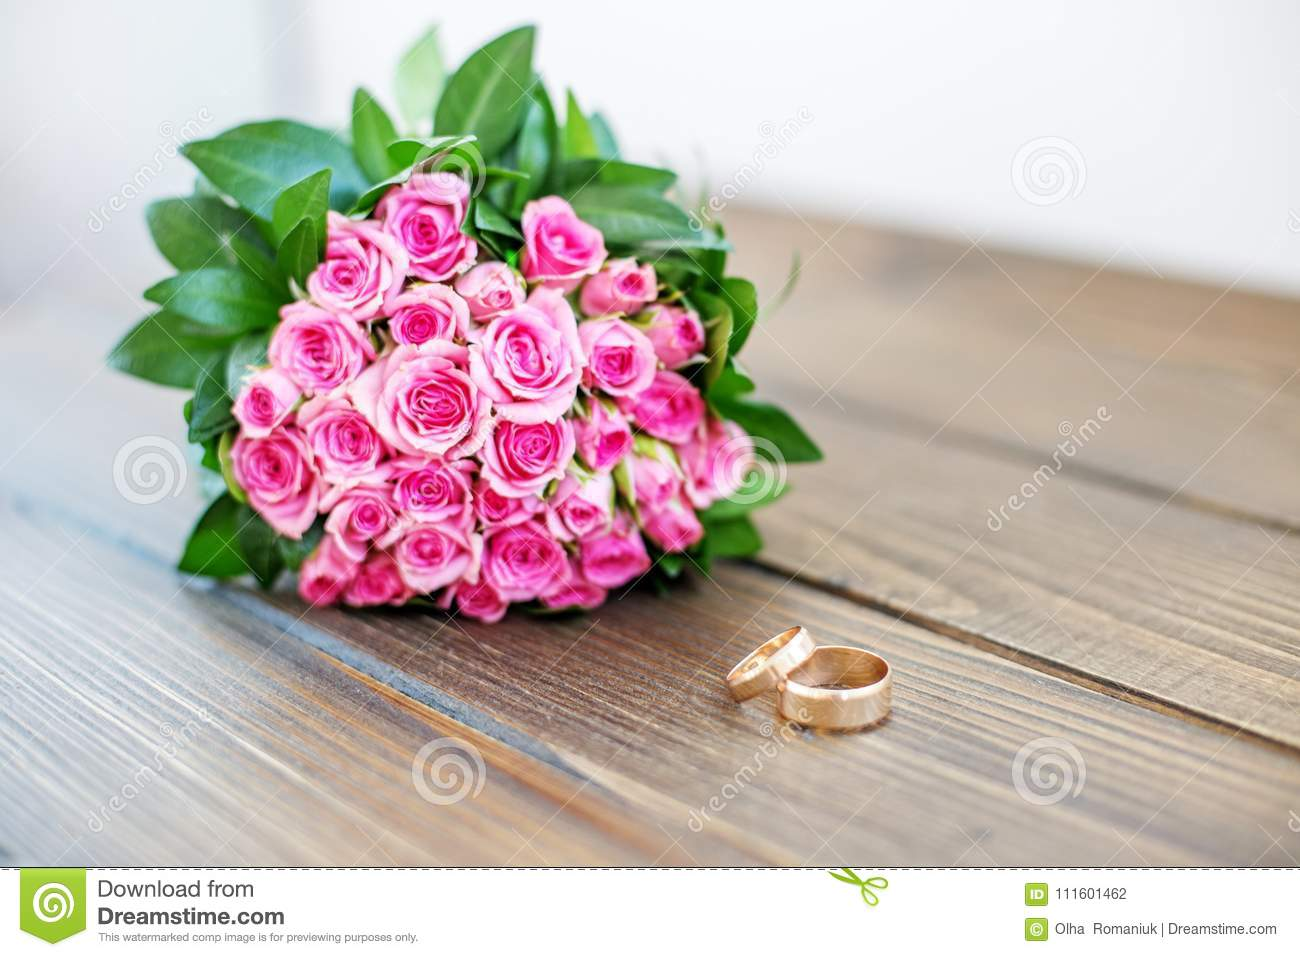 Wedding Bouquet Of Pink Roses And Wedding Rings On A Wooden Tabl ...